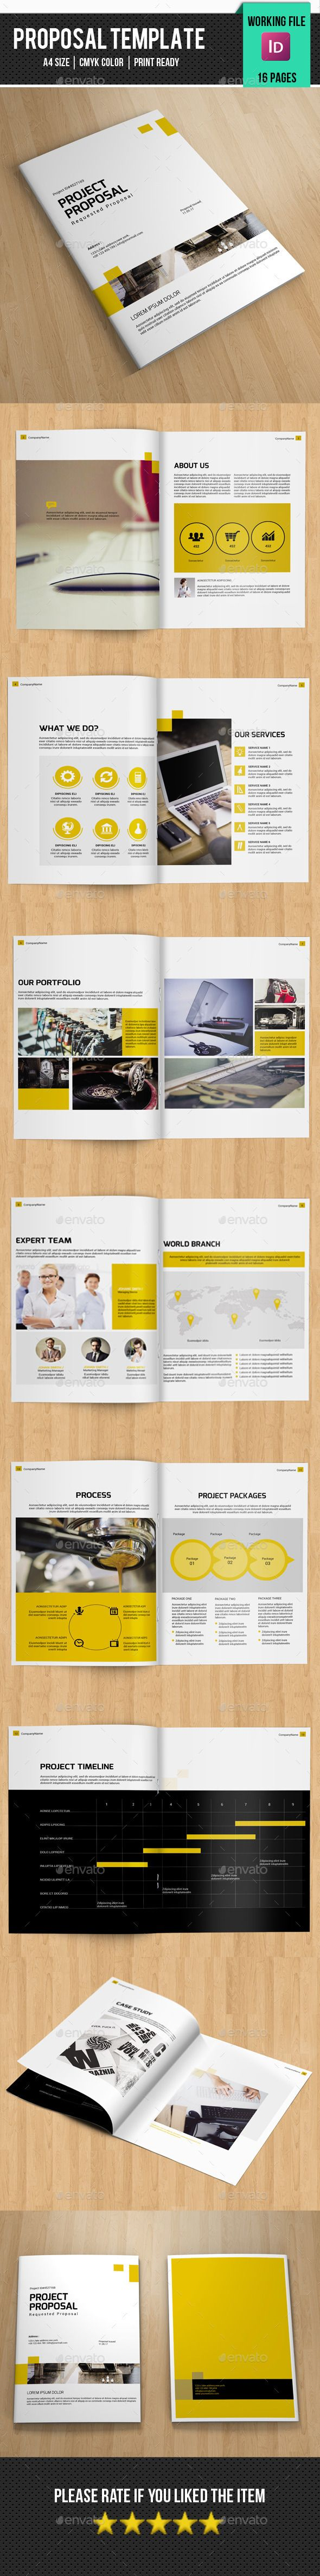 """Check out this @Behance project: """"Business Project Proposal Template"""" https://www.behance.net/gallery/44608543/Business-Project-Proposal-Template"""